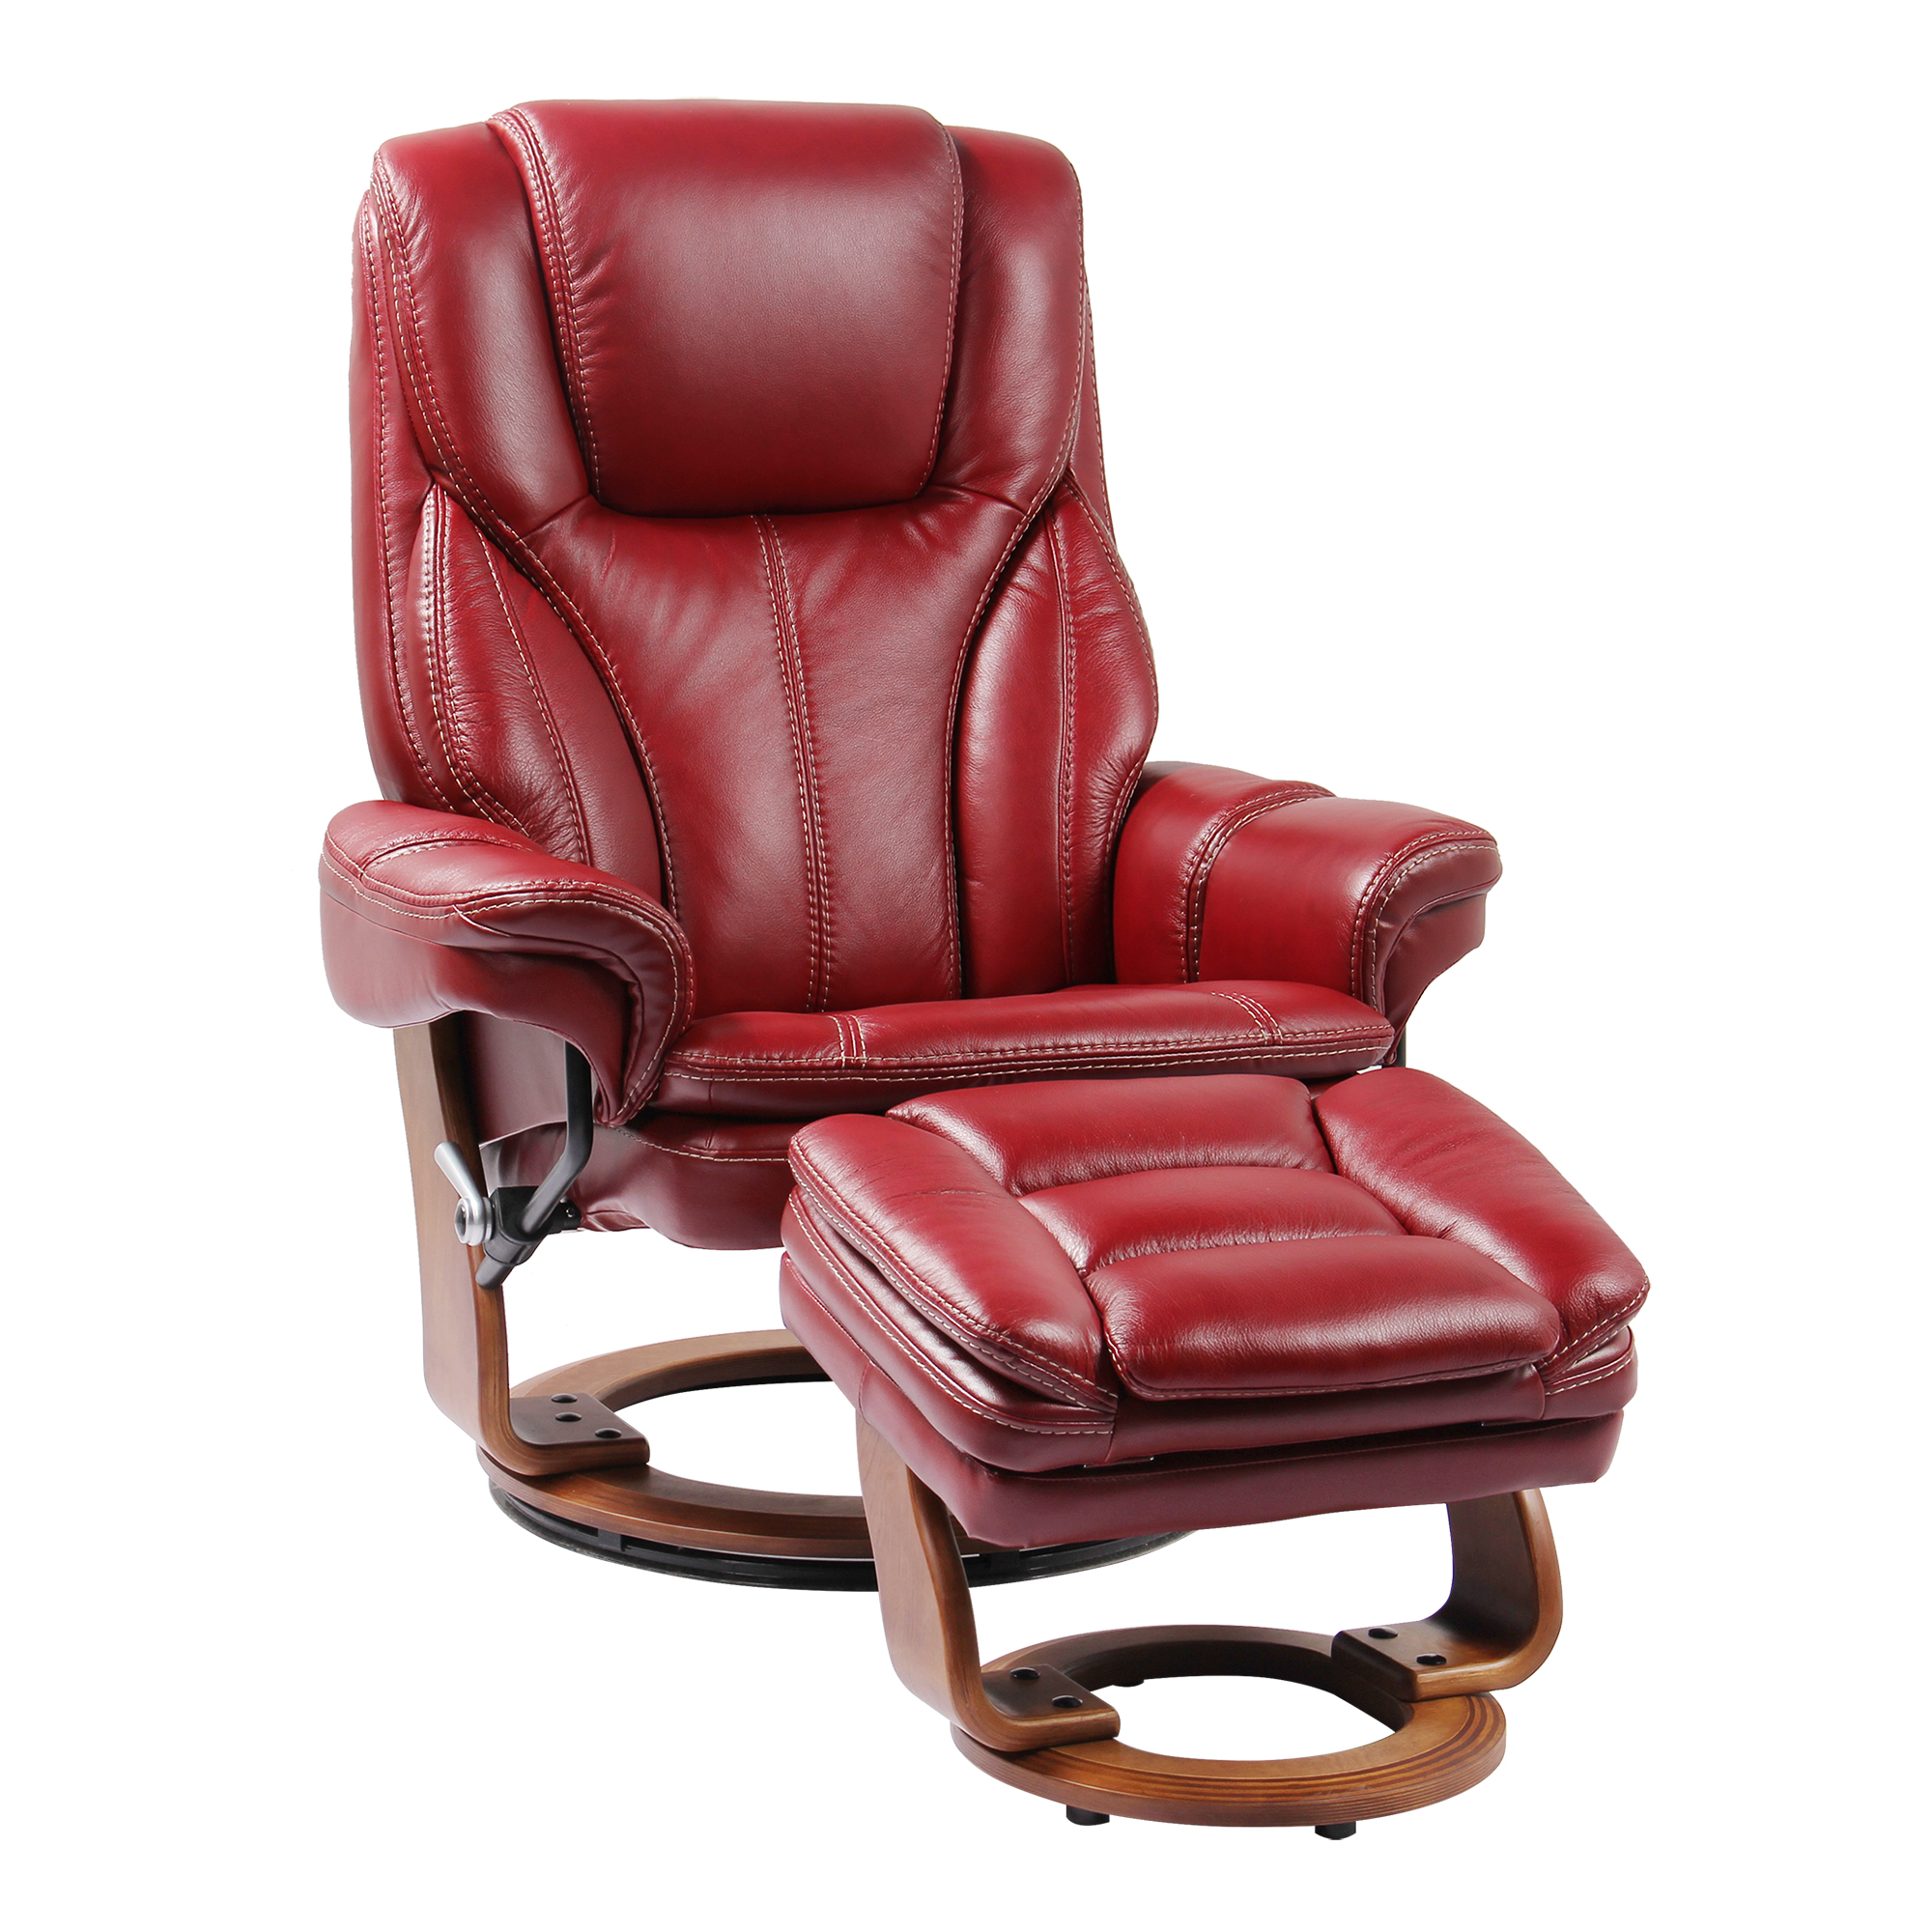 Reclining Chair And Ottoman Stress Free Hana Reclining Chair And Ottoman Comfort